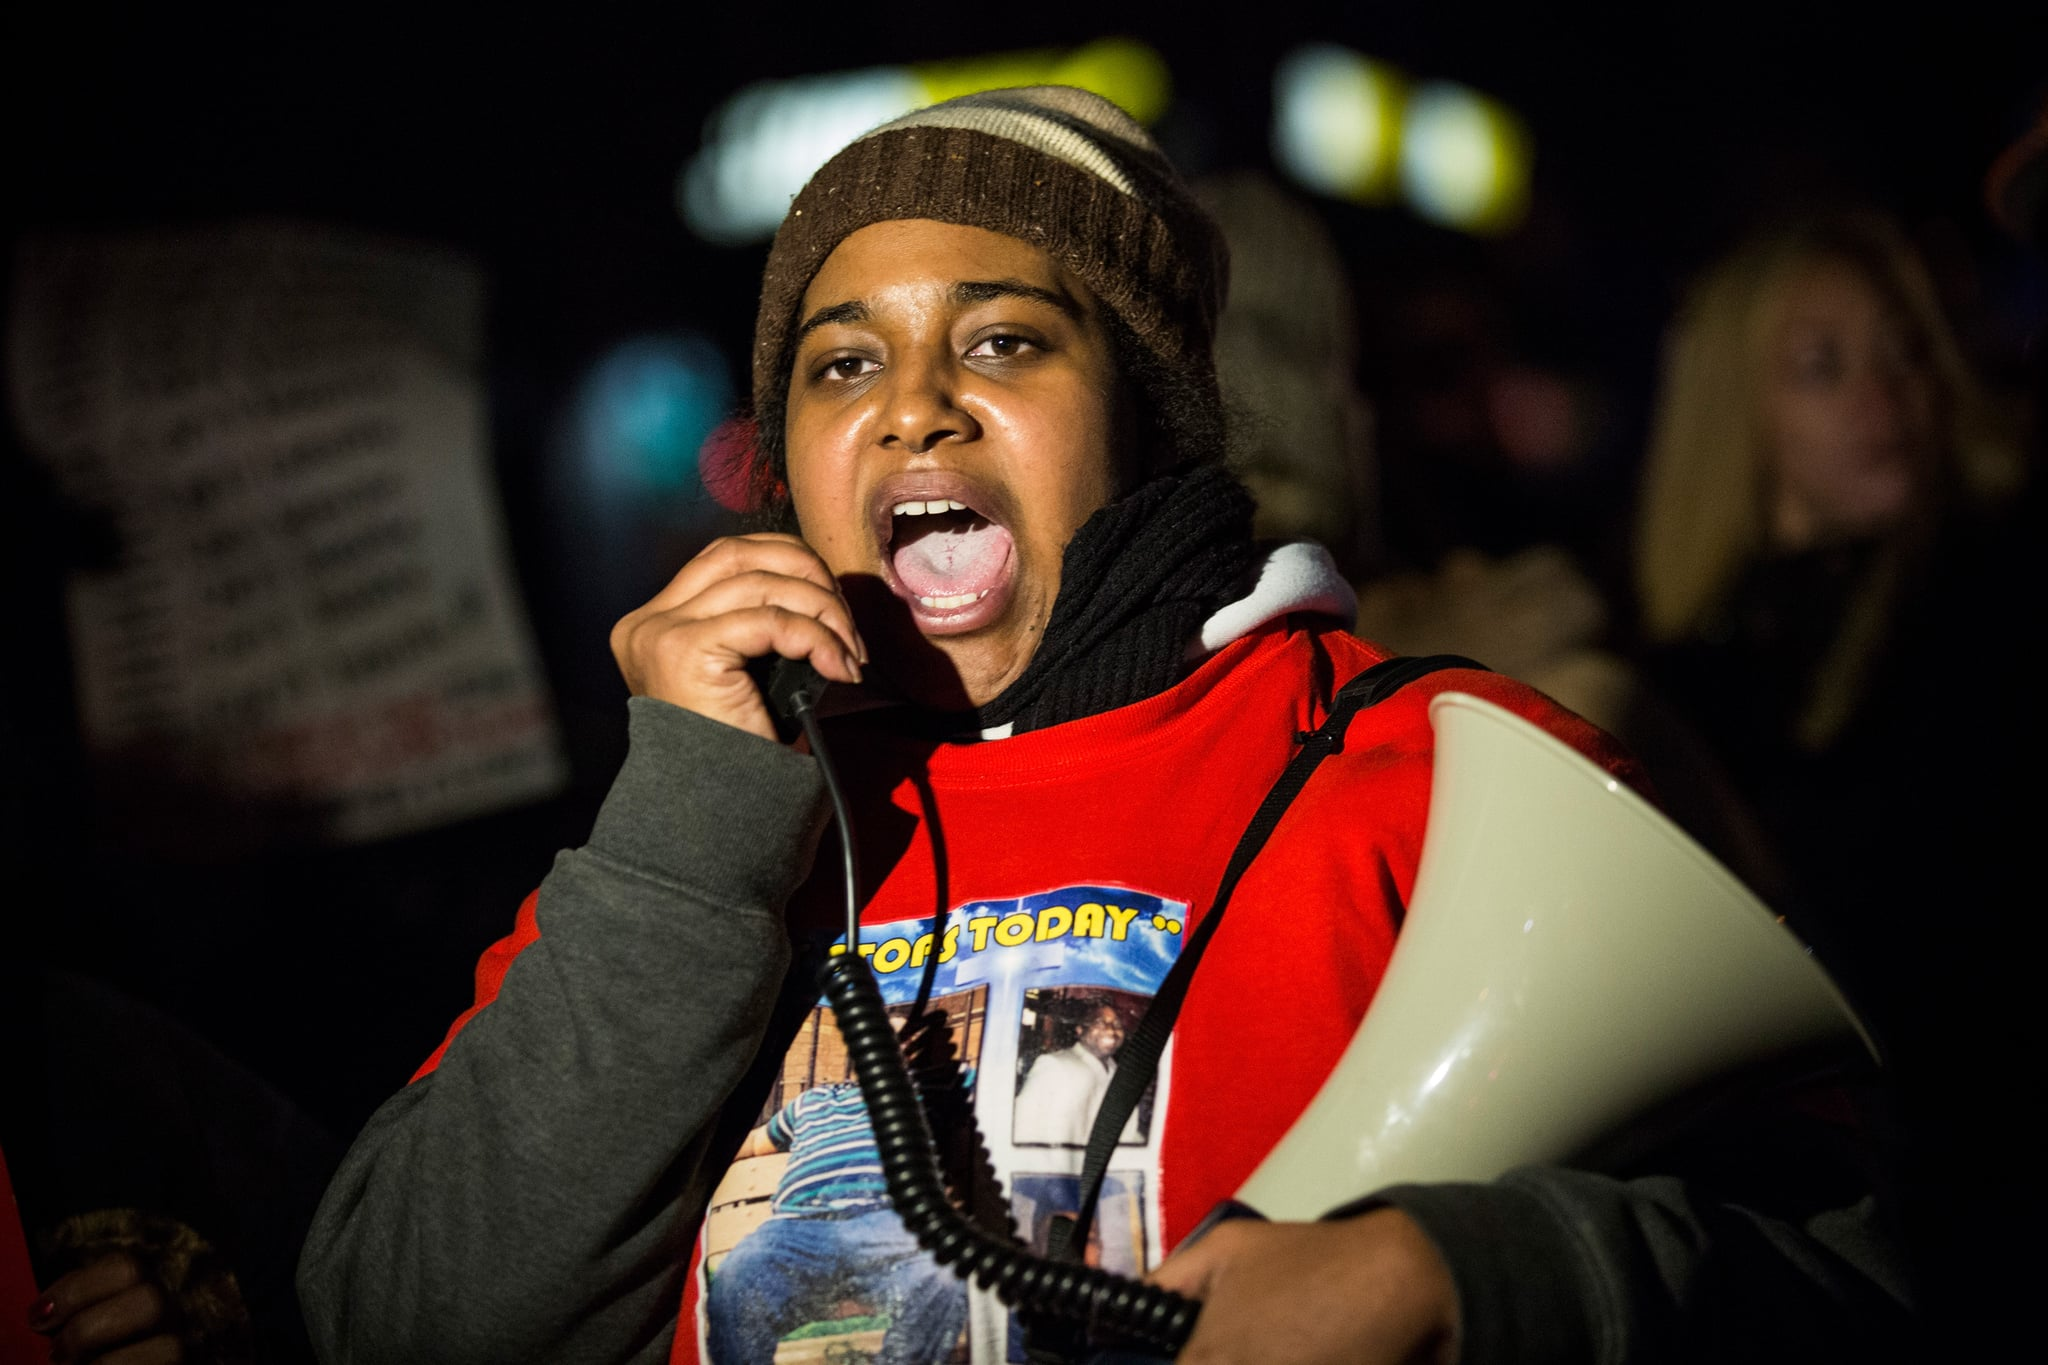 Erica Garner, daughter of murdered chokehold victim Eric, is dead at 27